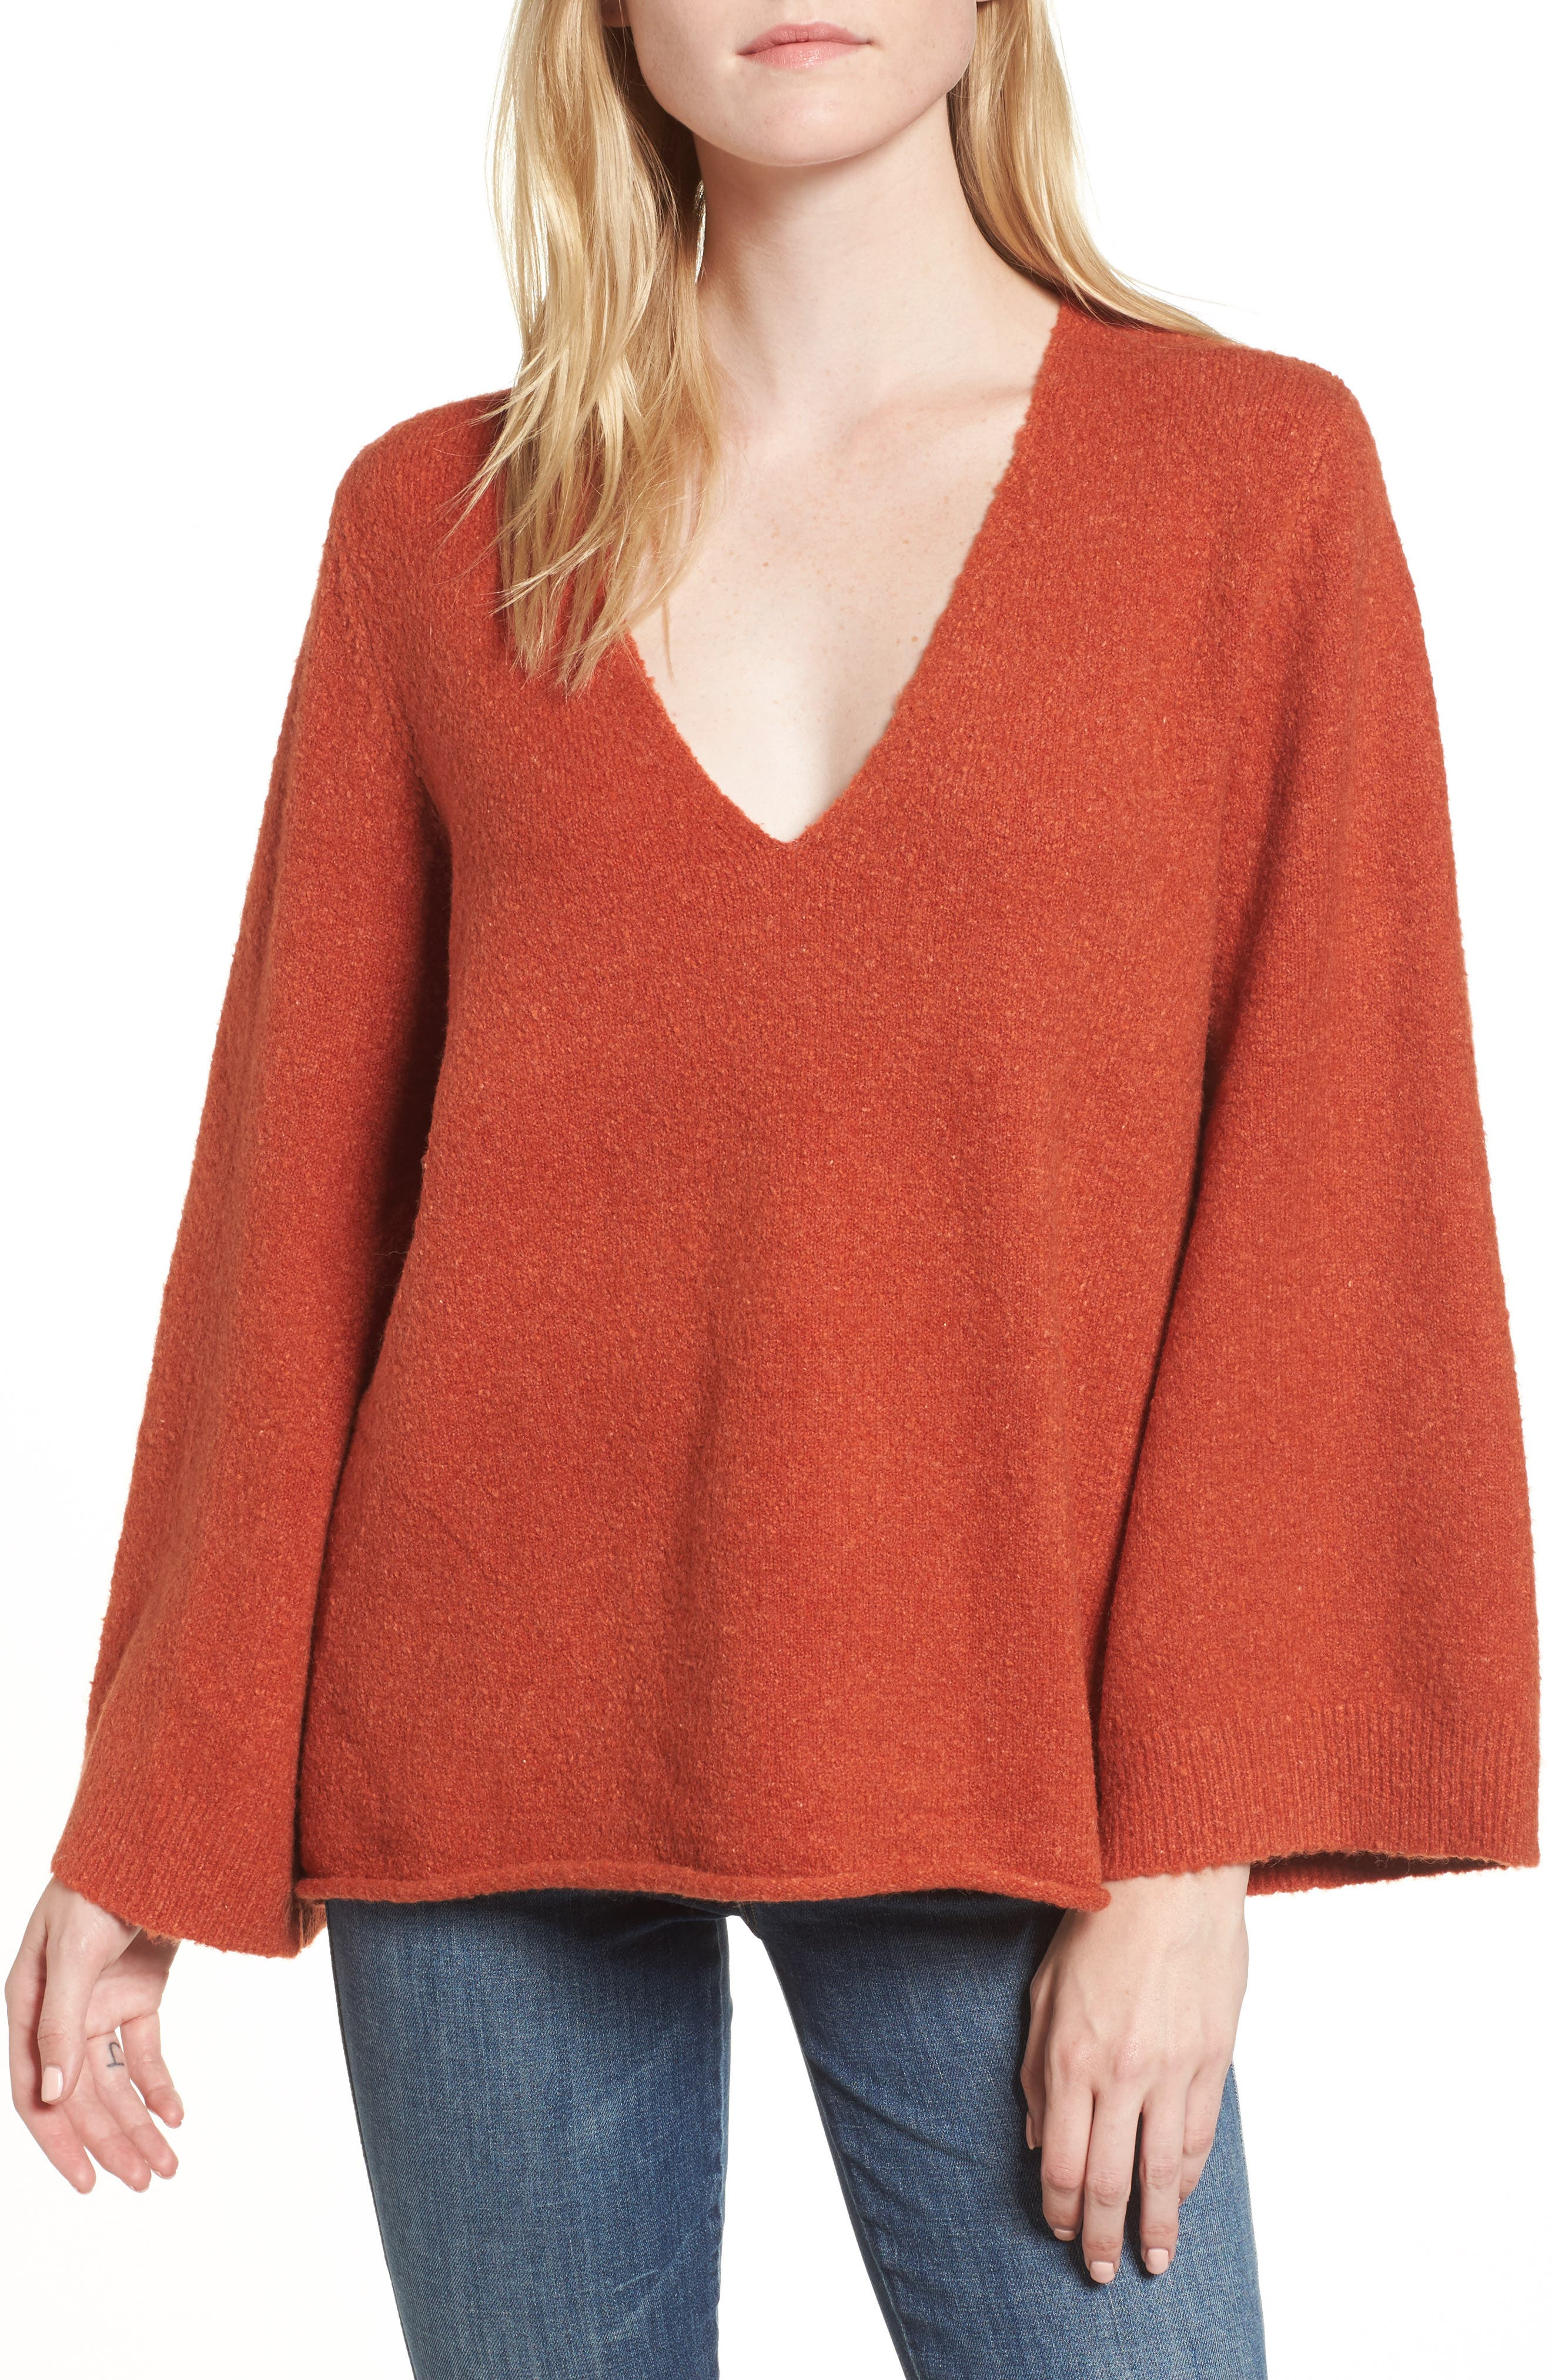 Urban Flossy Sweater,                             Main thumbnail 1, color,                             Copper Coin